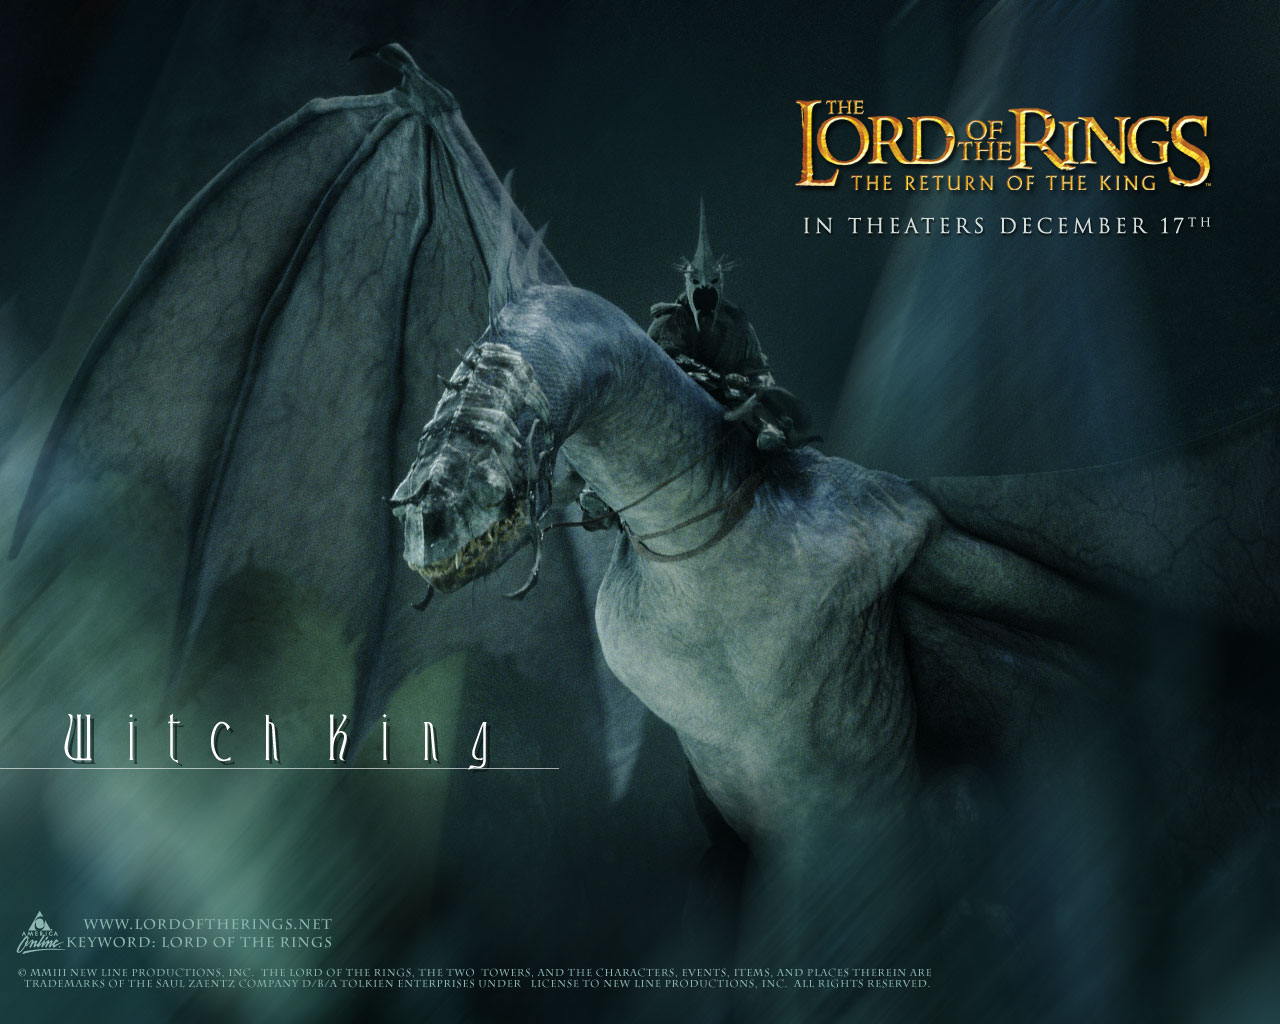 Wallpapers Lord of the rings 1280x1024